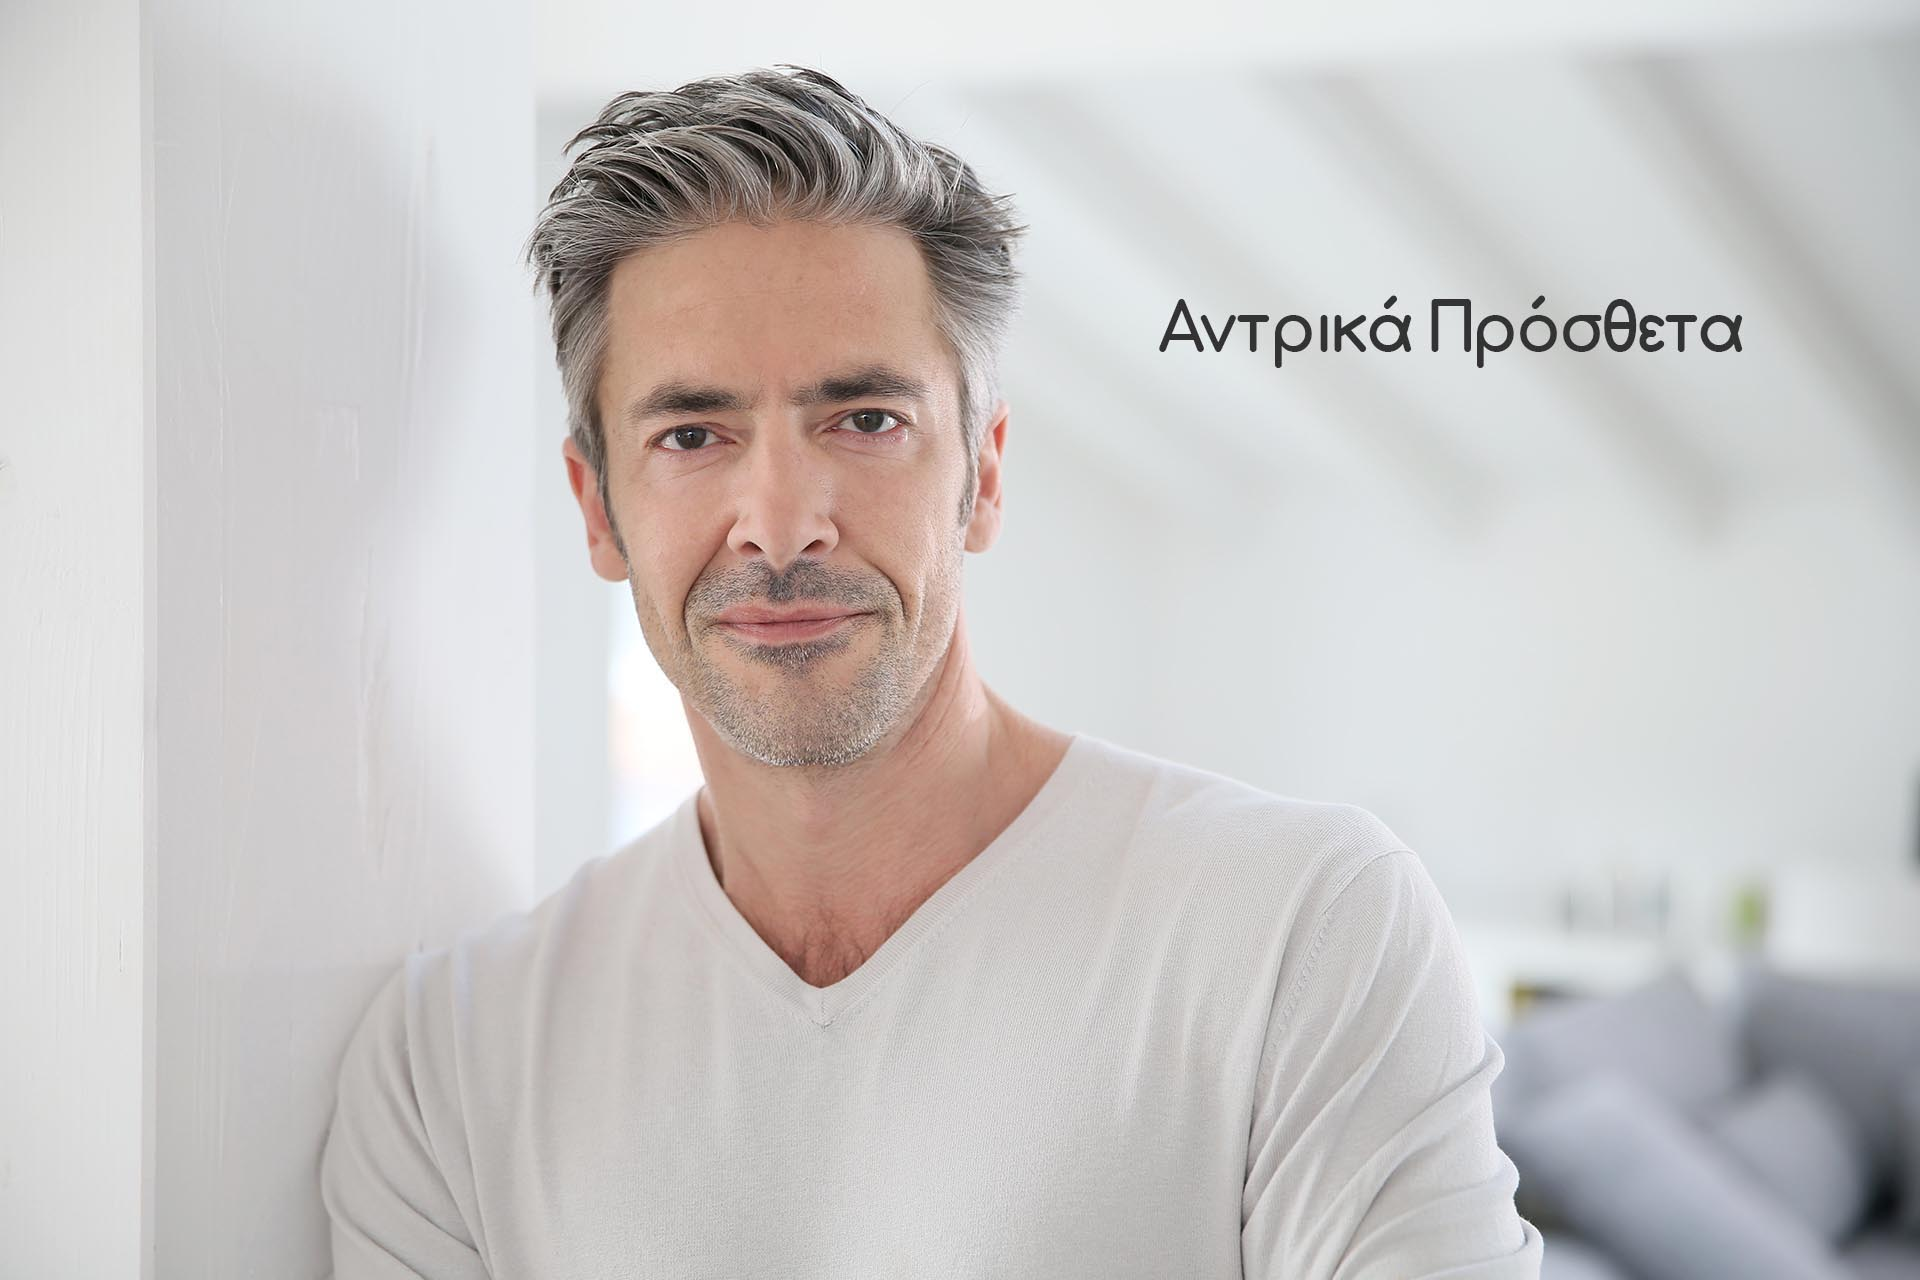 Αντρικά Πρόσθετα - INTERCONNECT HAIR CENTERINTERCONNECT HAIR CENTER 567a0fde397